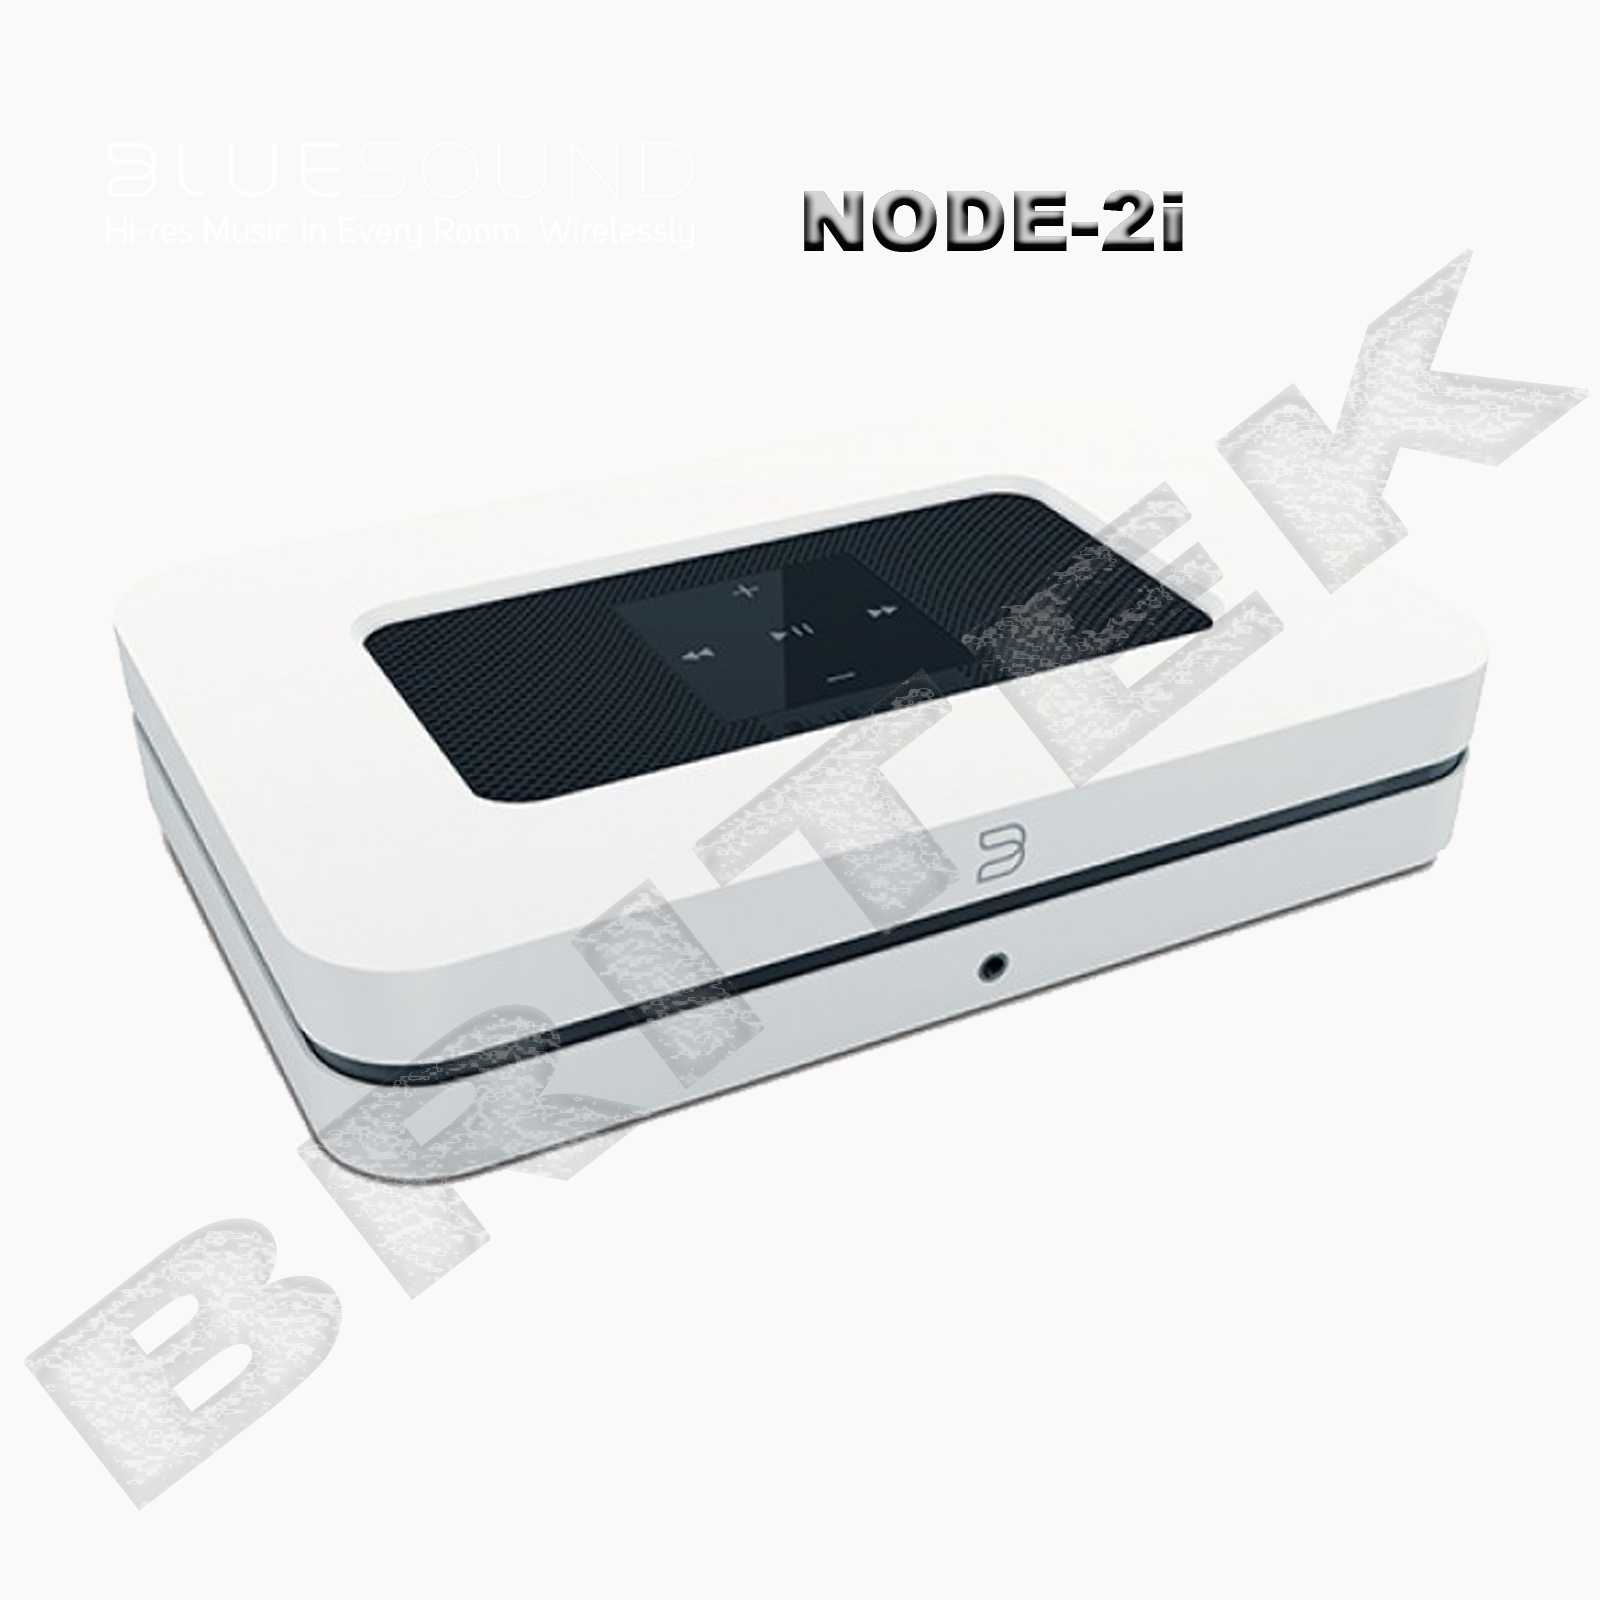 Bluesound NODE-2i